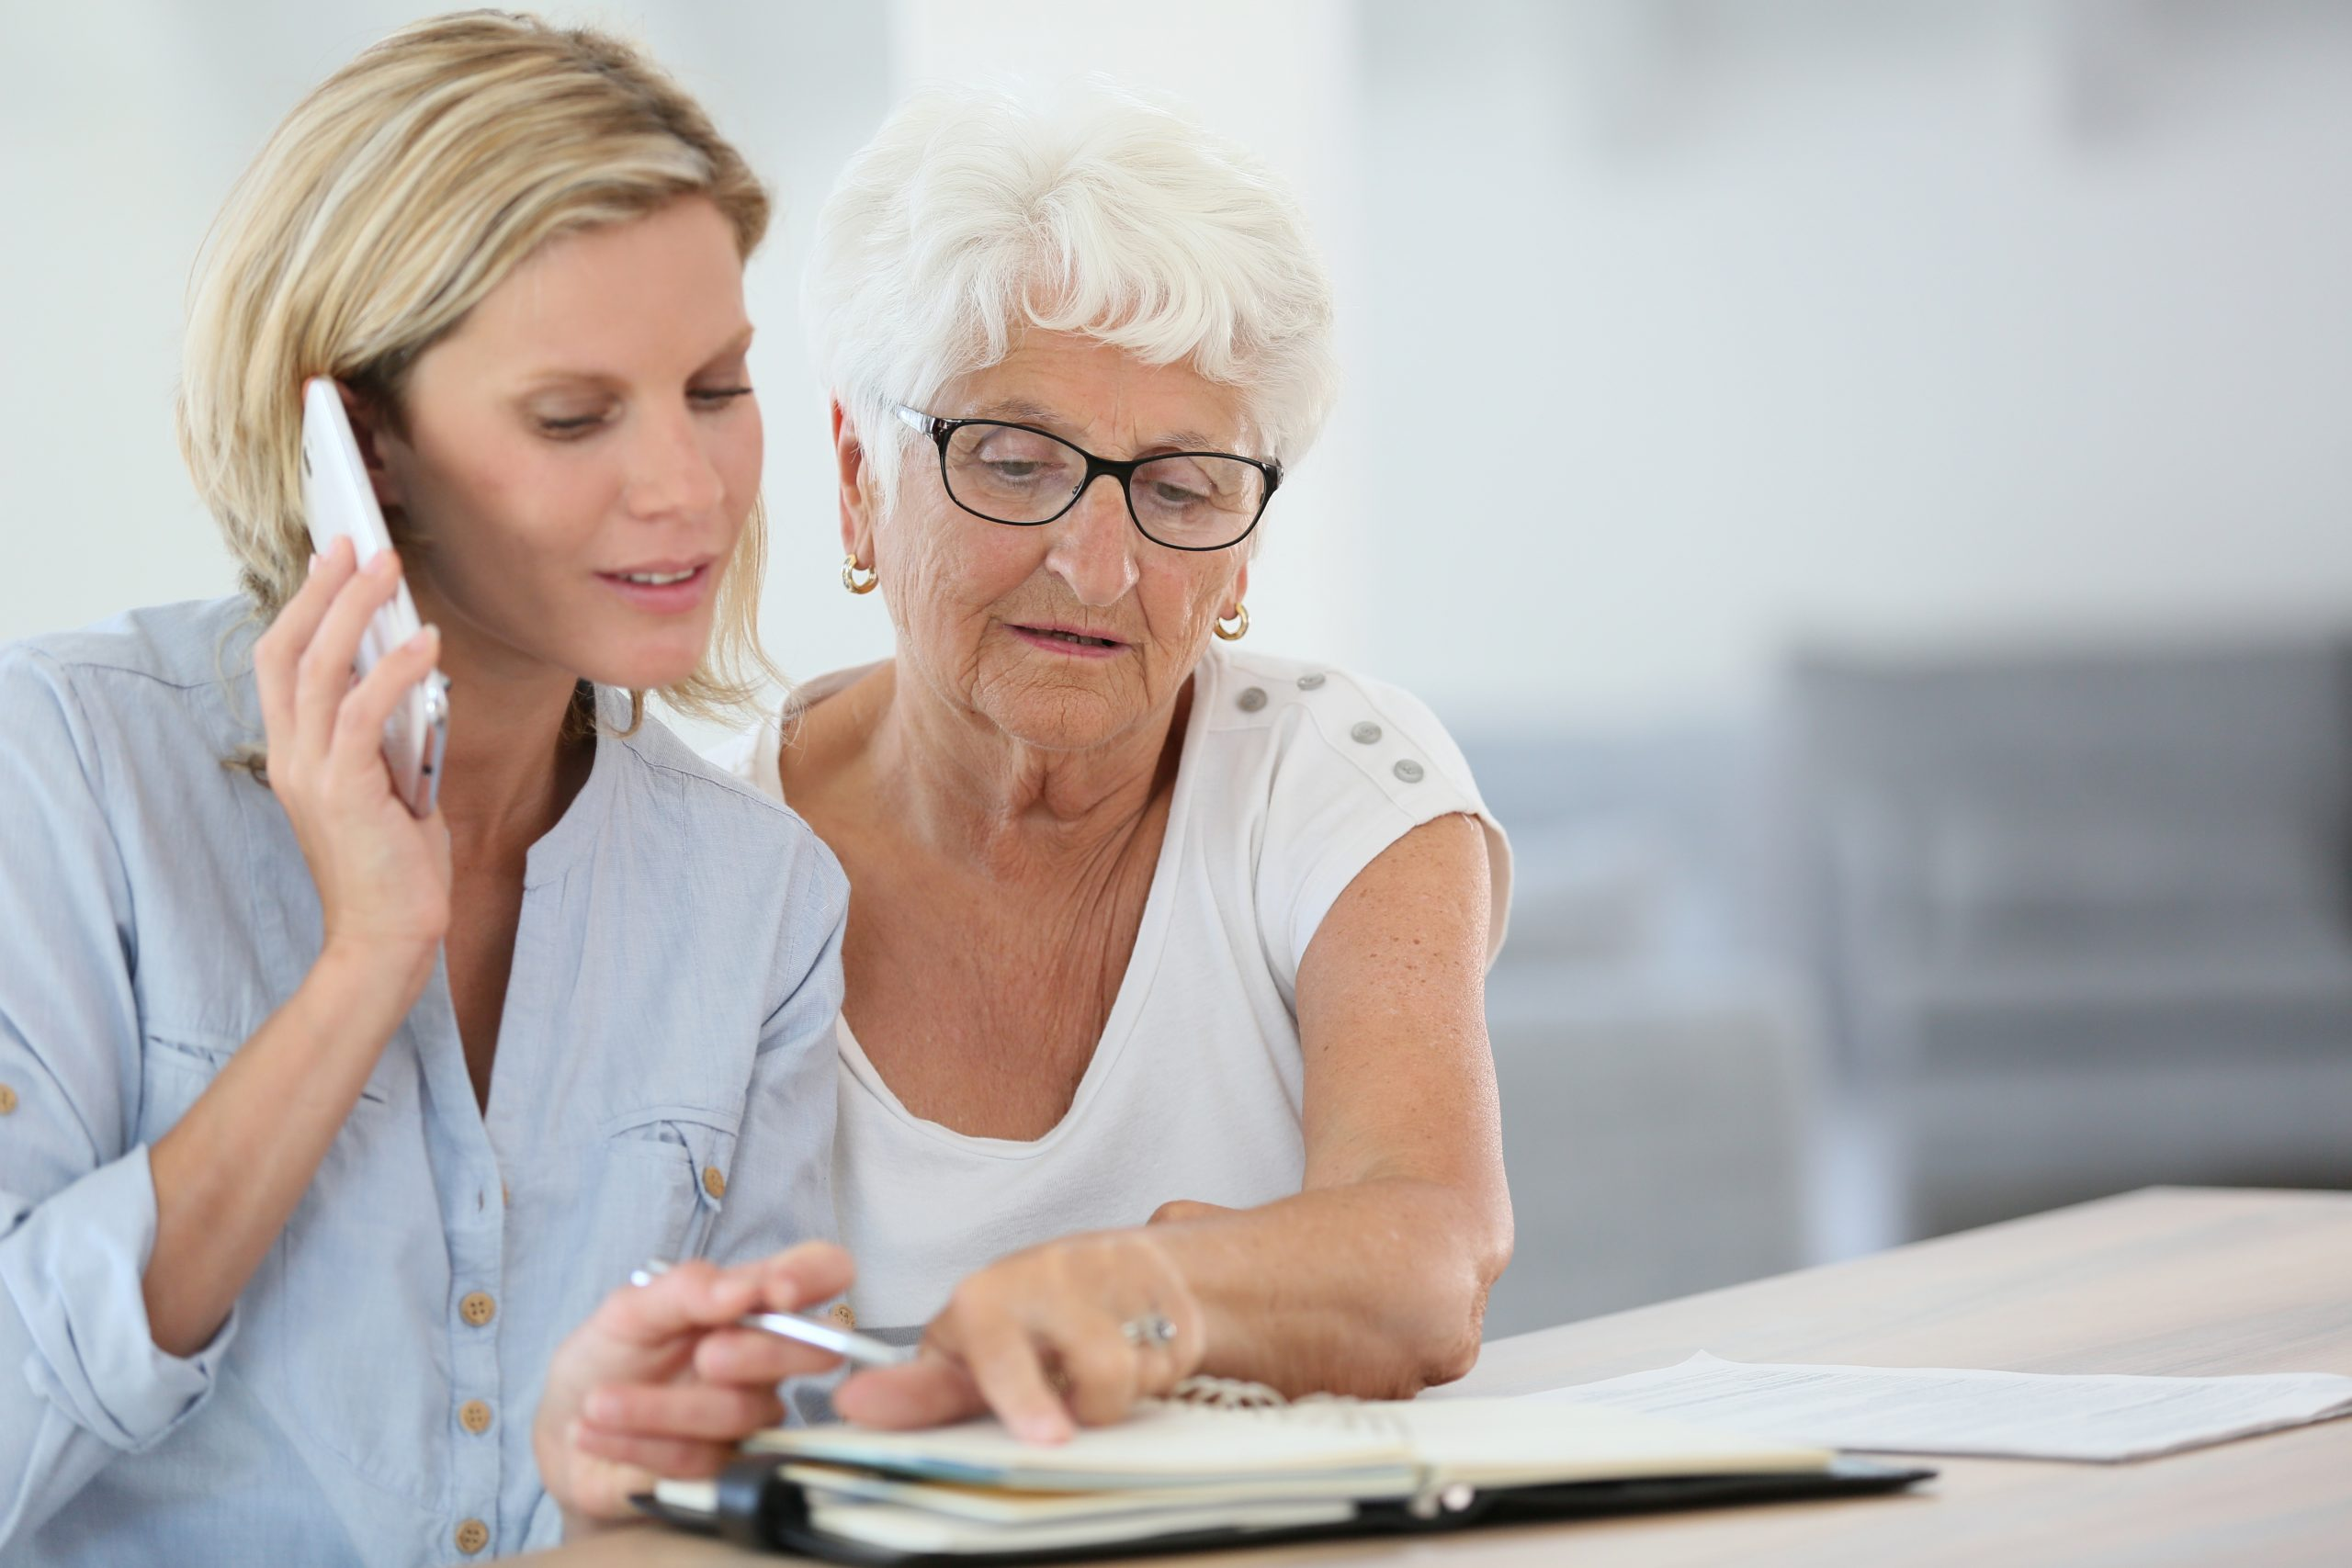 Homehelp booking medical appointment for elderly woman